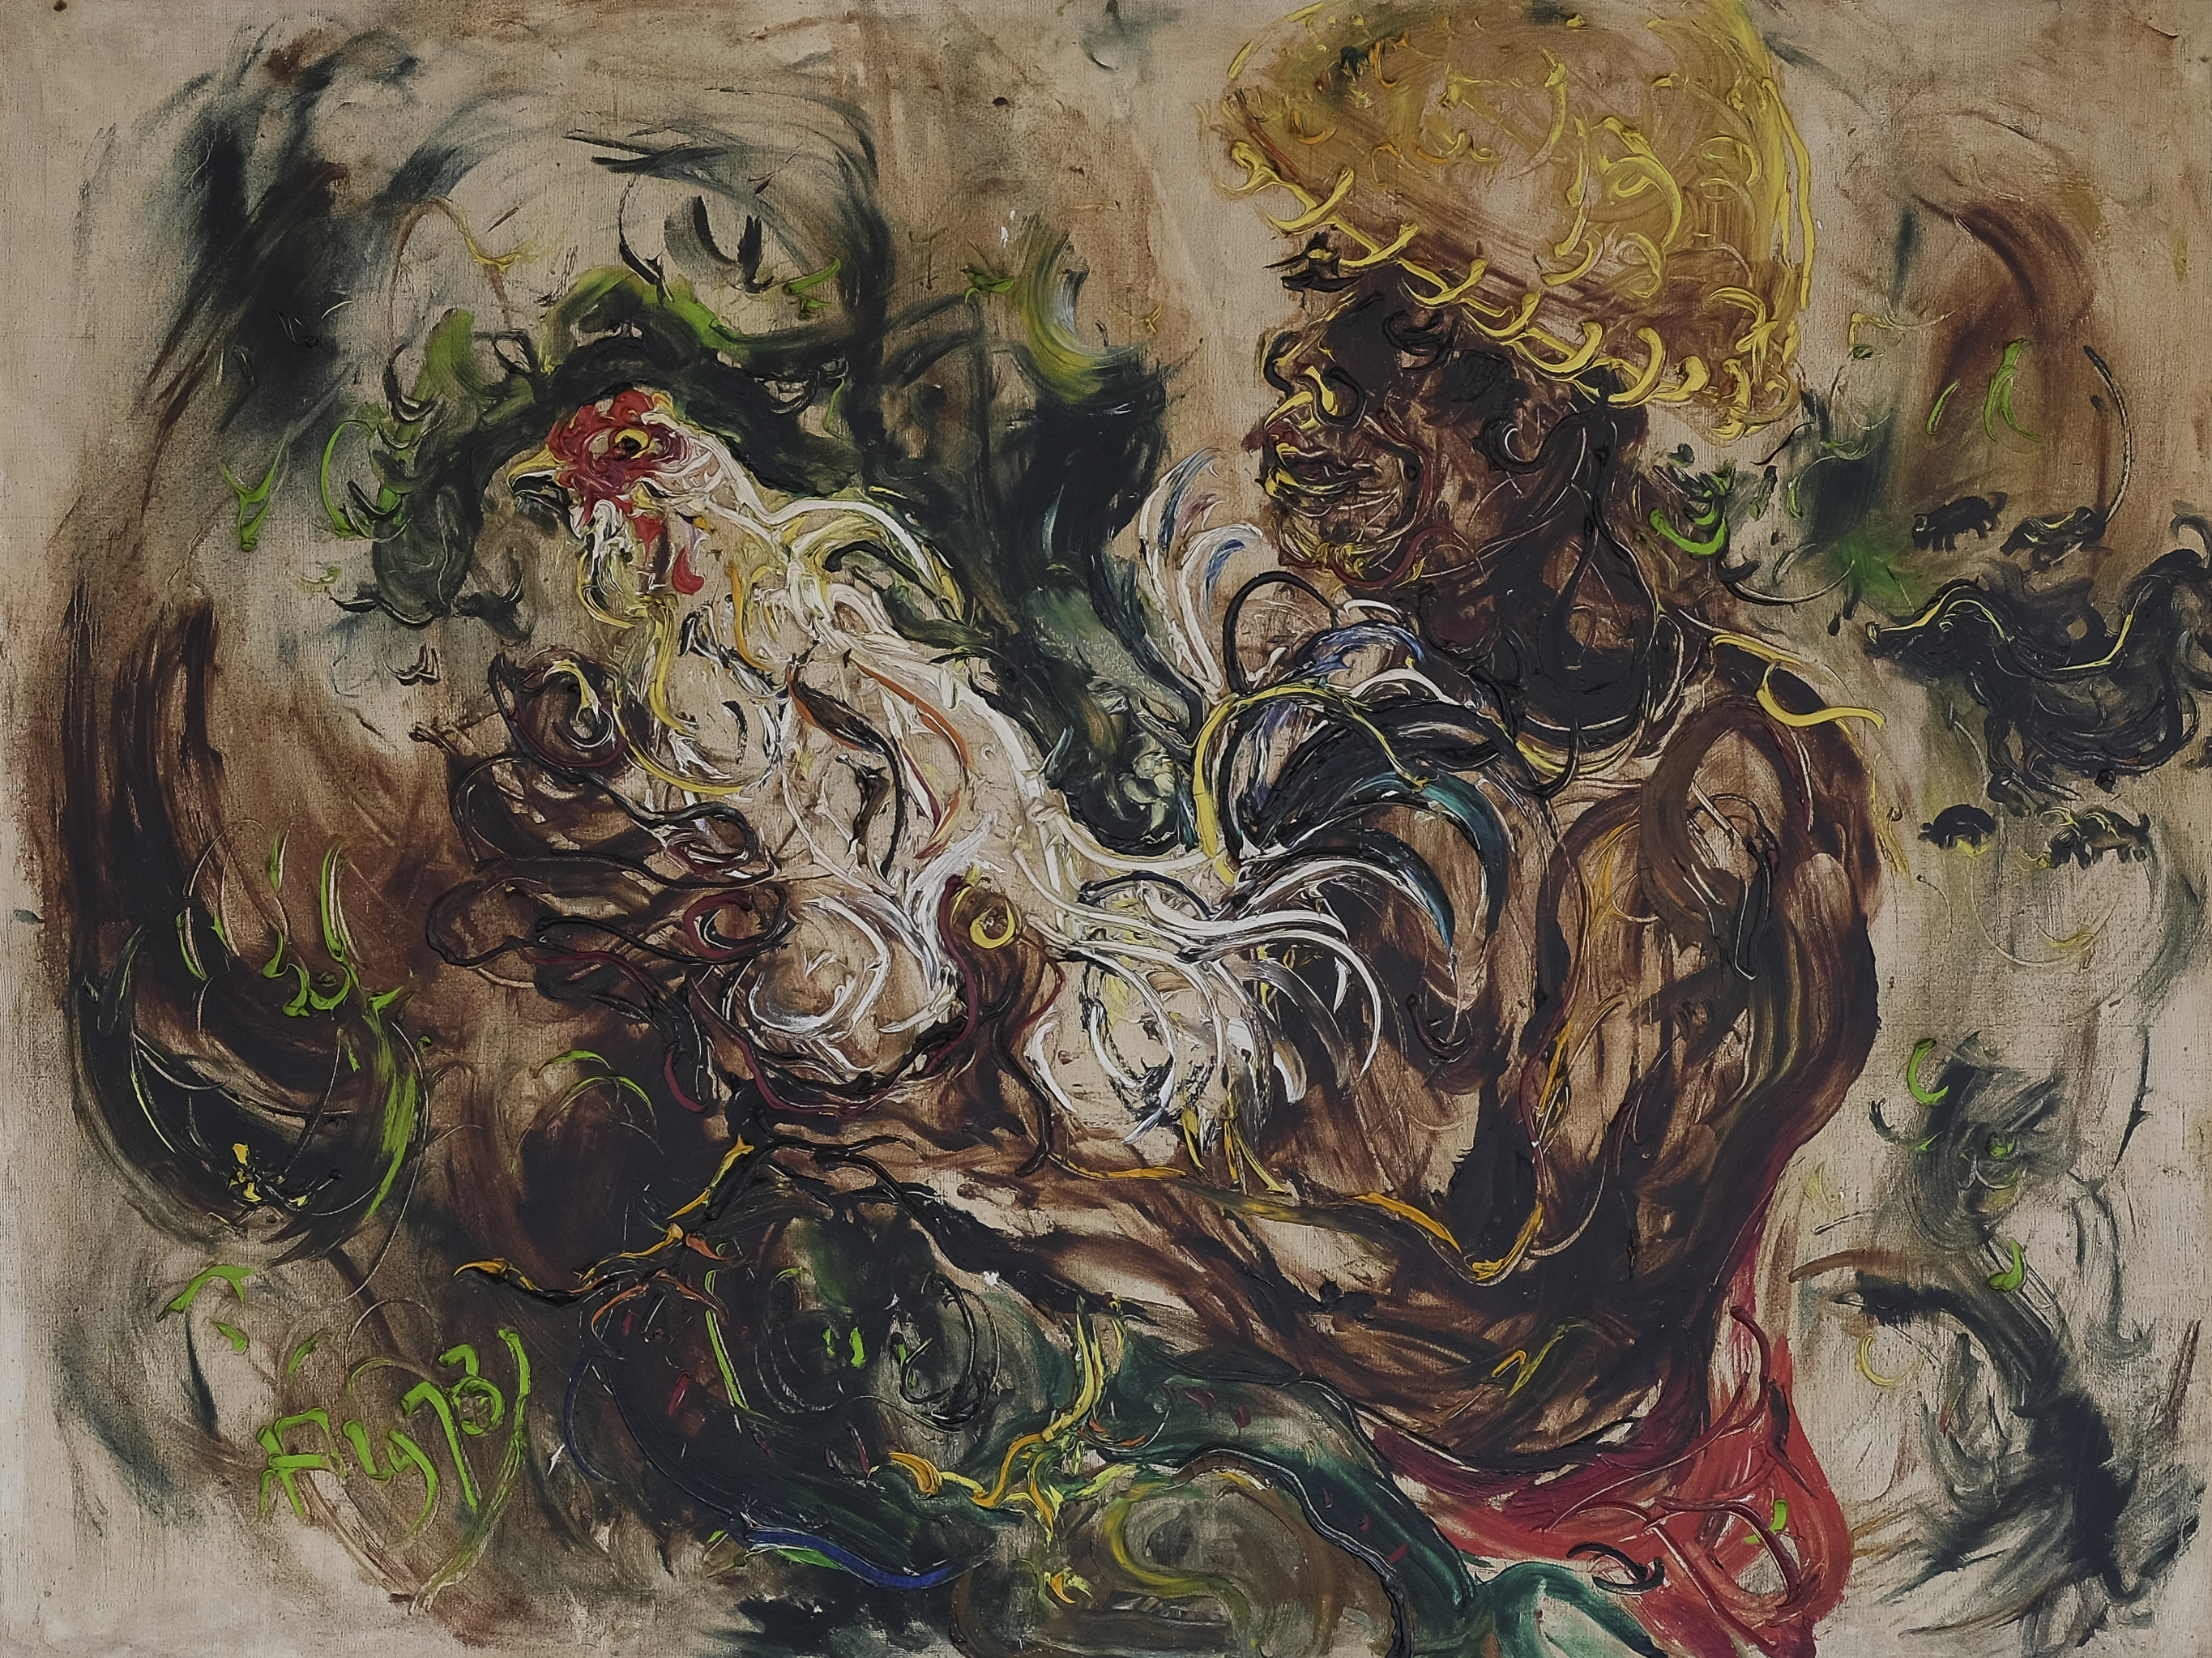 Affandi, Man with Cockerel, 1973, 98 x 130 cm